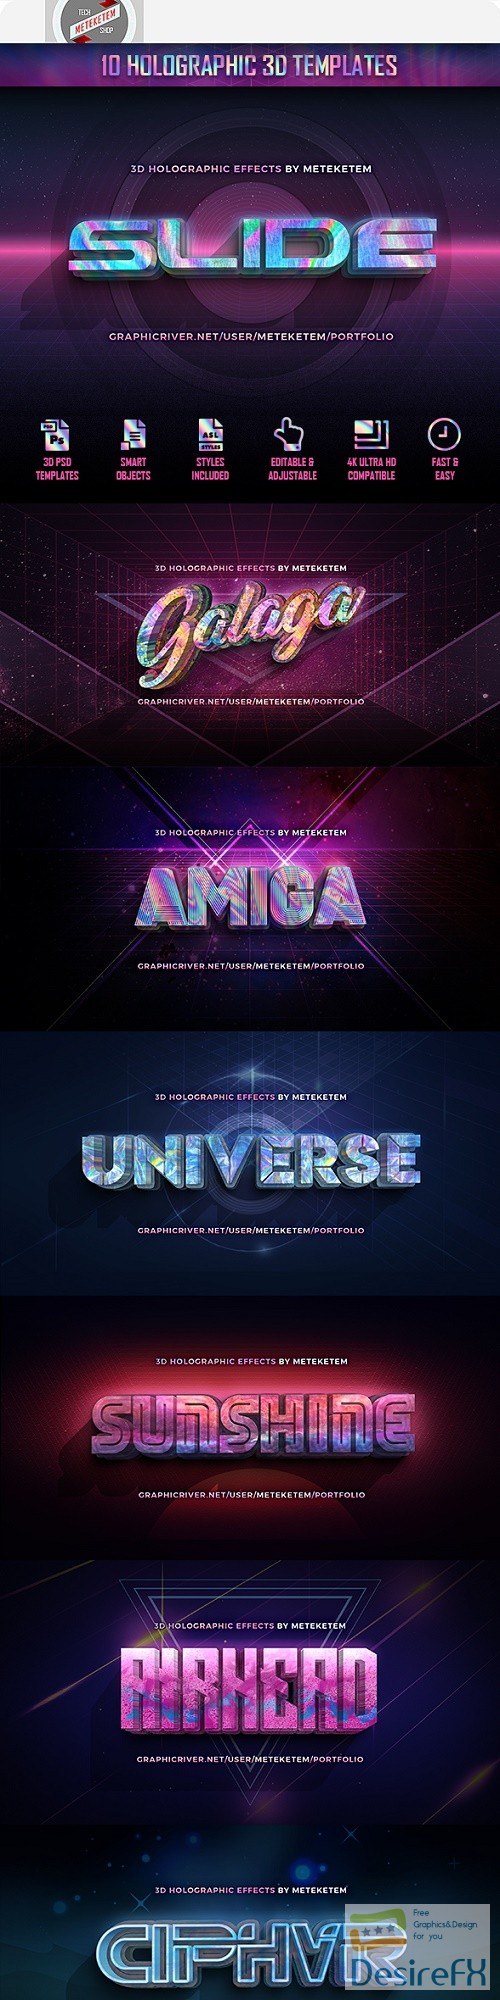 styles-asl - 3D Holographic Text Effects 22377756